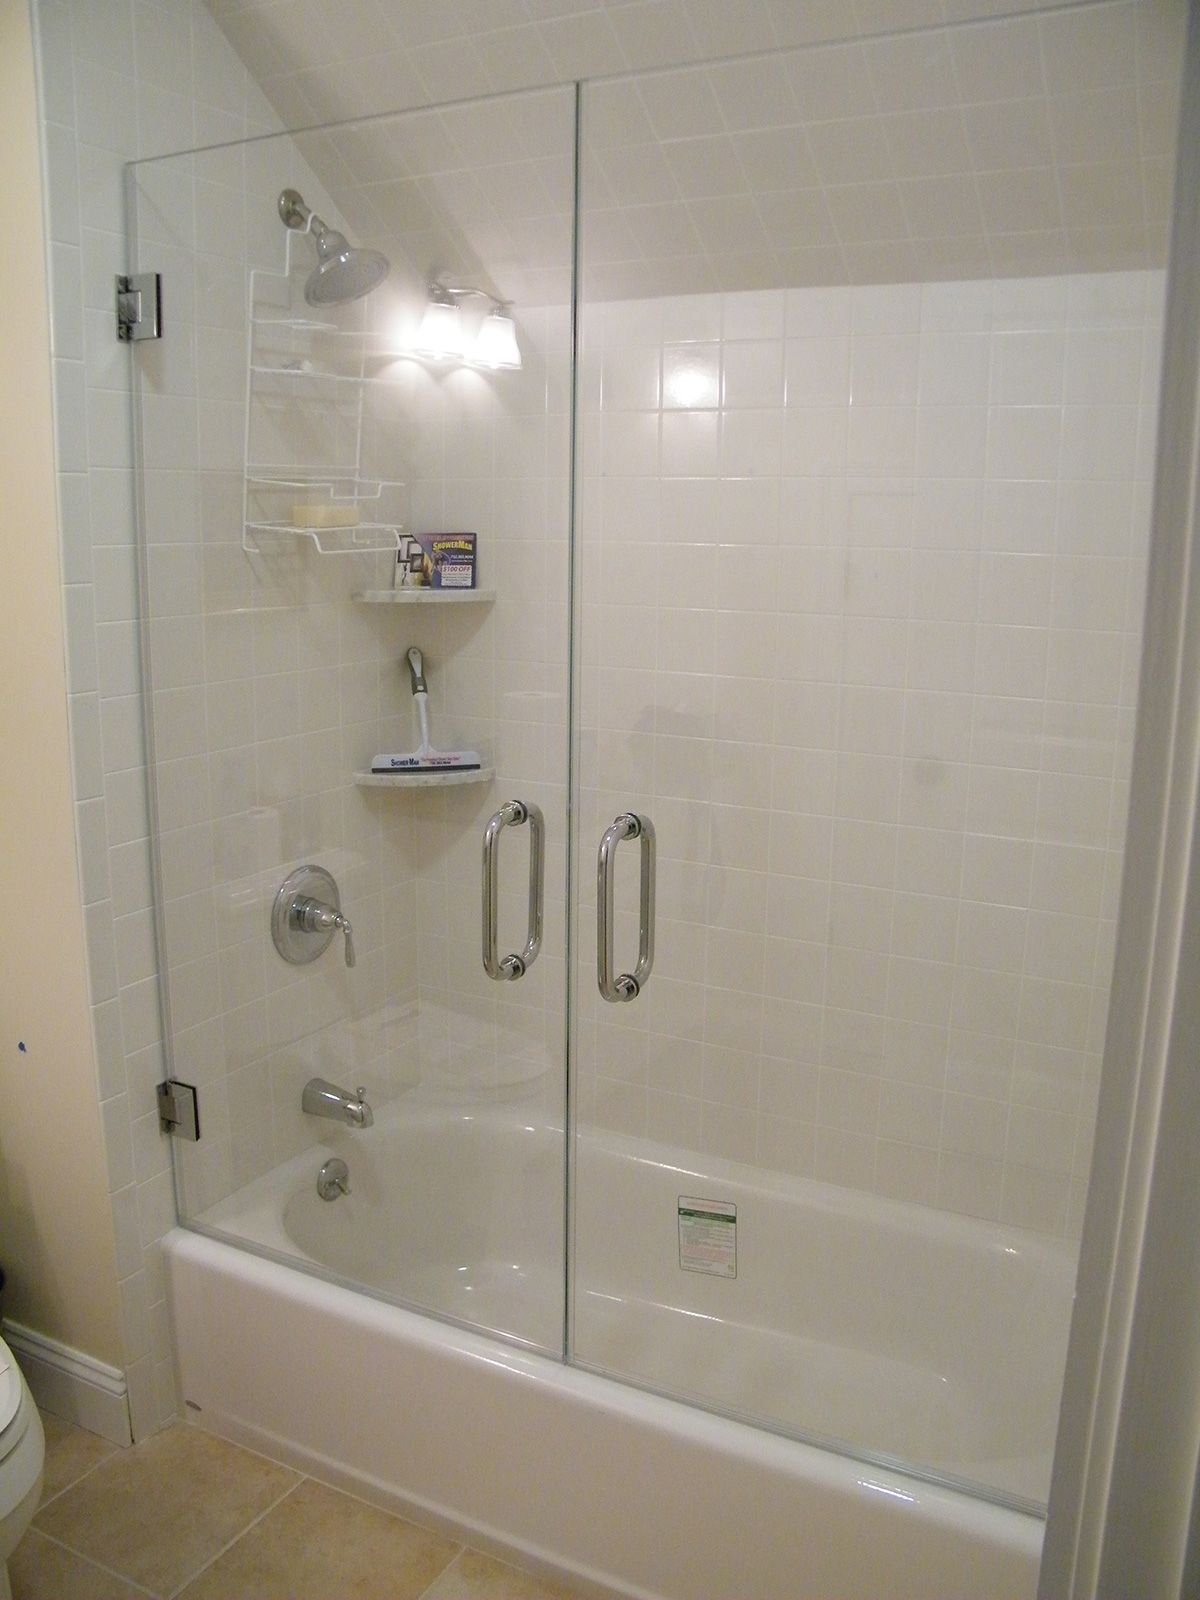 Bathroom Renovations NJ Bathroom Renovation Ideas Shower - Bathroom shower door repair